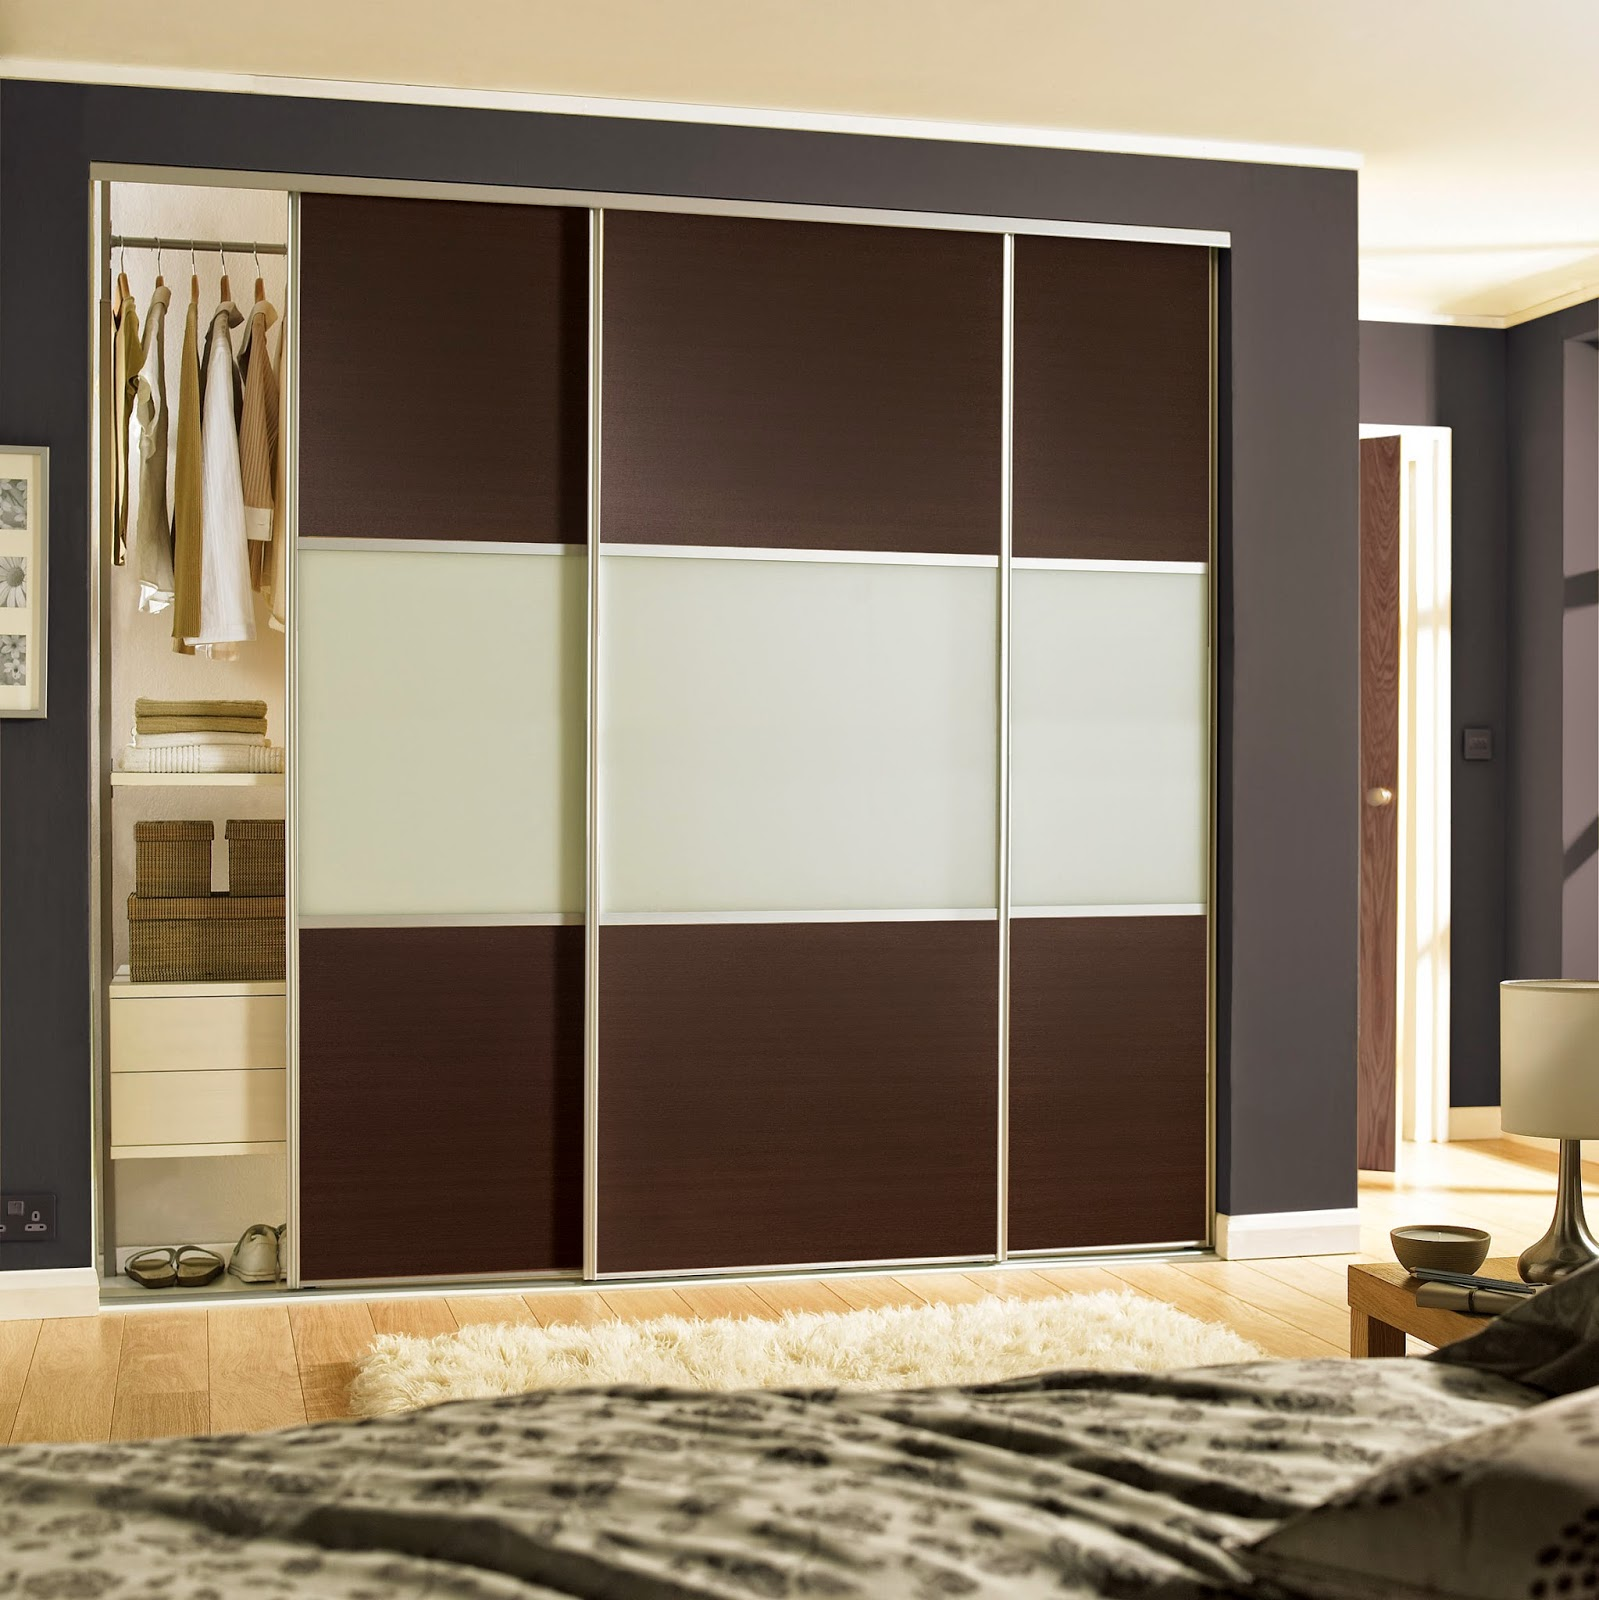 Bedrooms Plus Sliding Wardrobe Doors And Fittings How To Measure For Sliding Wardrobe Doors